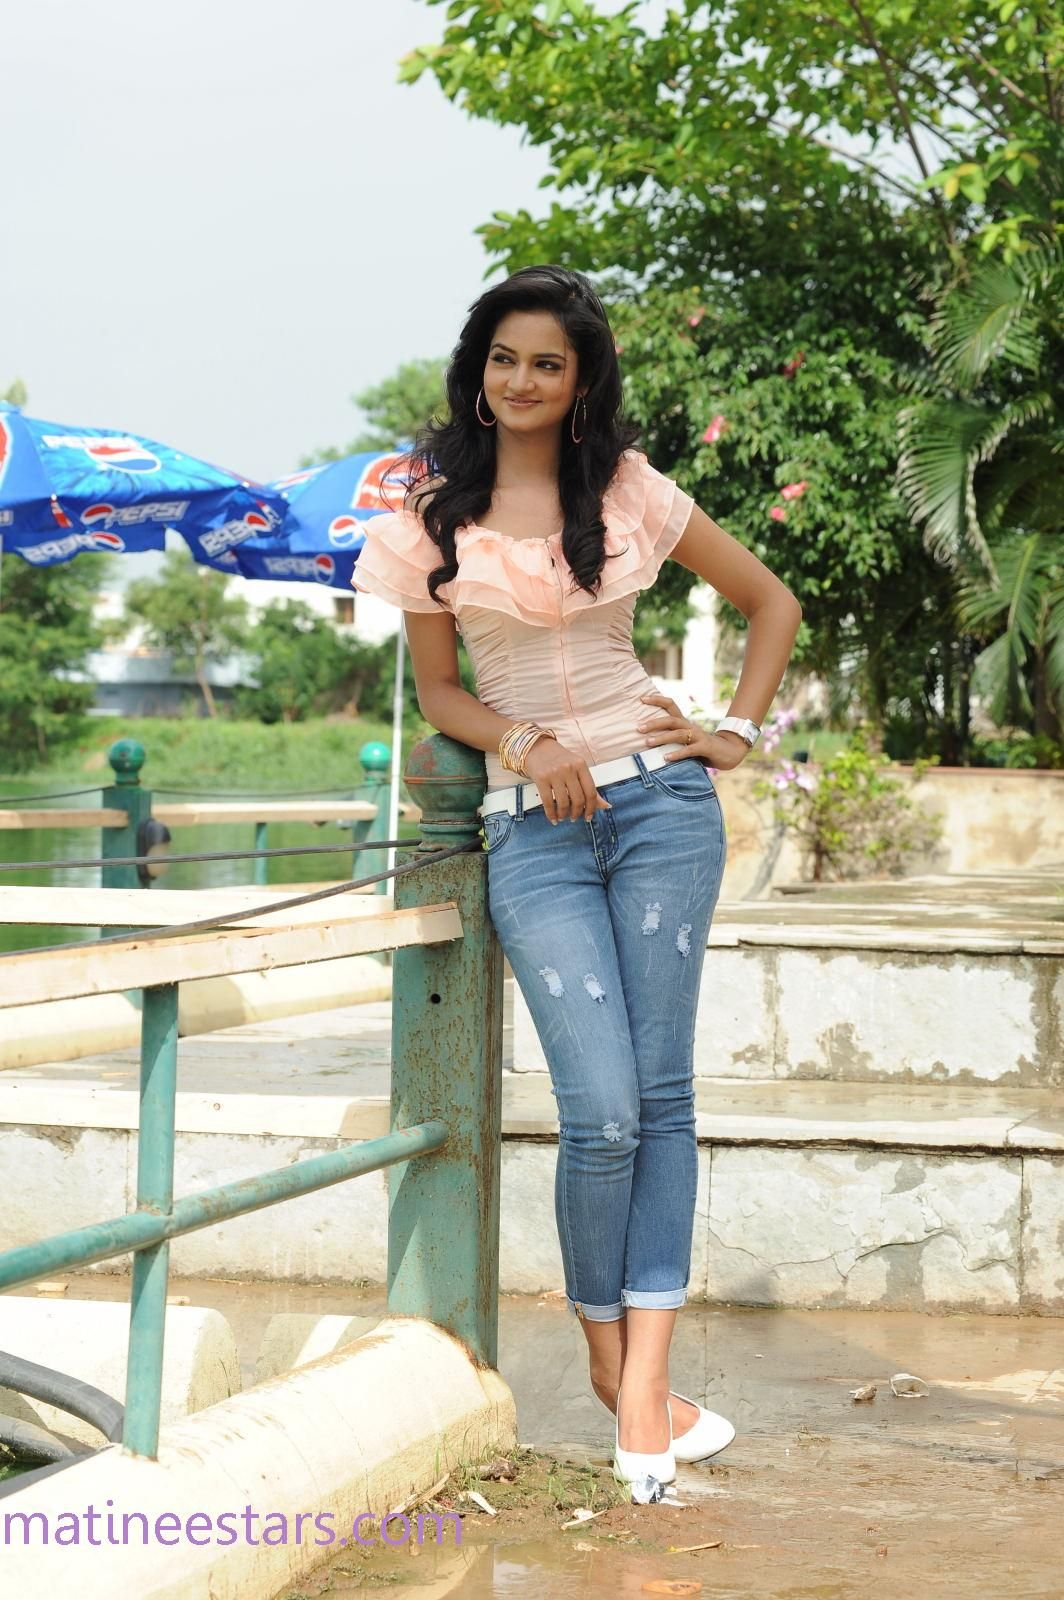 Shanvi Stills In Light Blue Jeans And Light Pink Top ...